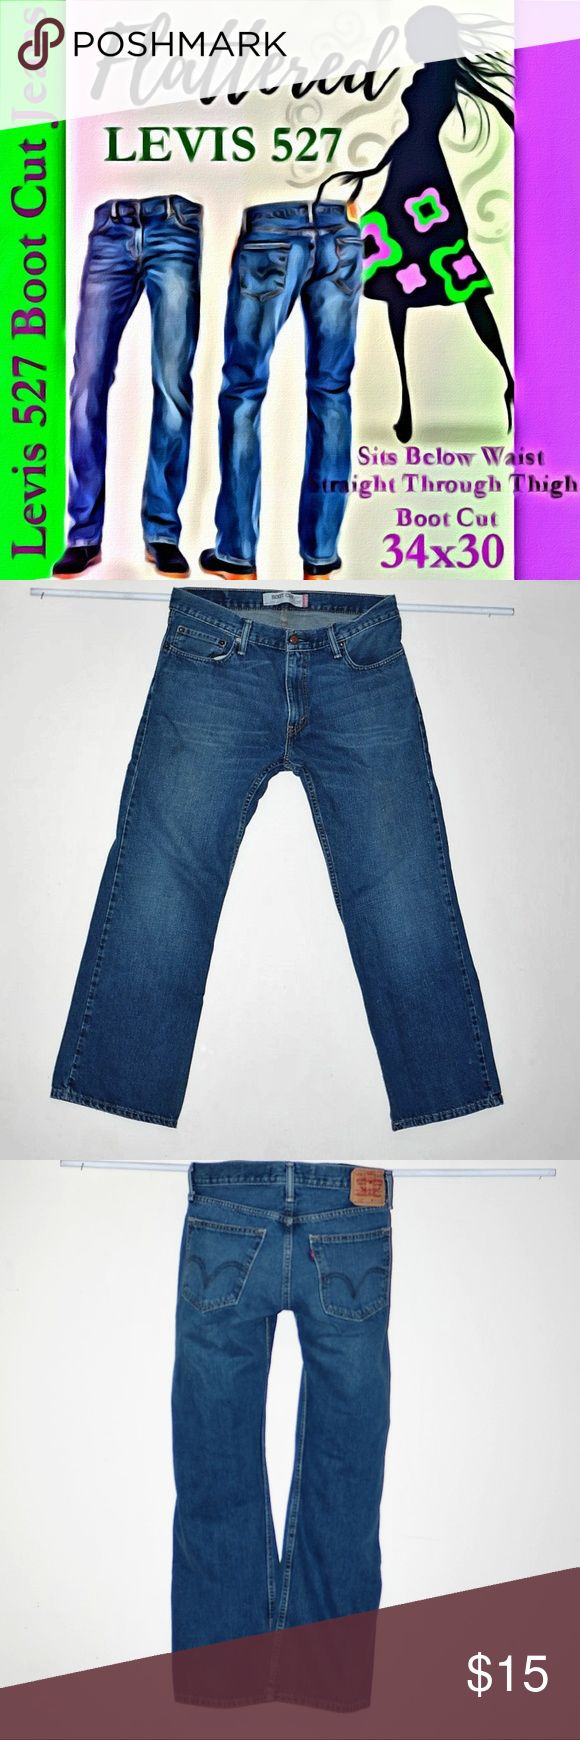 LEVIS 527 Boot Cut Jeans Mens 34x30 Denim waist 34 LEVIS 527 Boot Cut Jeans Mens 34x30 Denim waist 34 By Levis 527 Boot Cut Sits Below Waist Straight through Thigh Boot Cut 34x30 Minimal to no signs of wear Levi's Jeans Bootcut